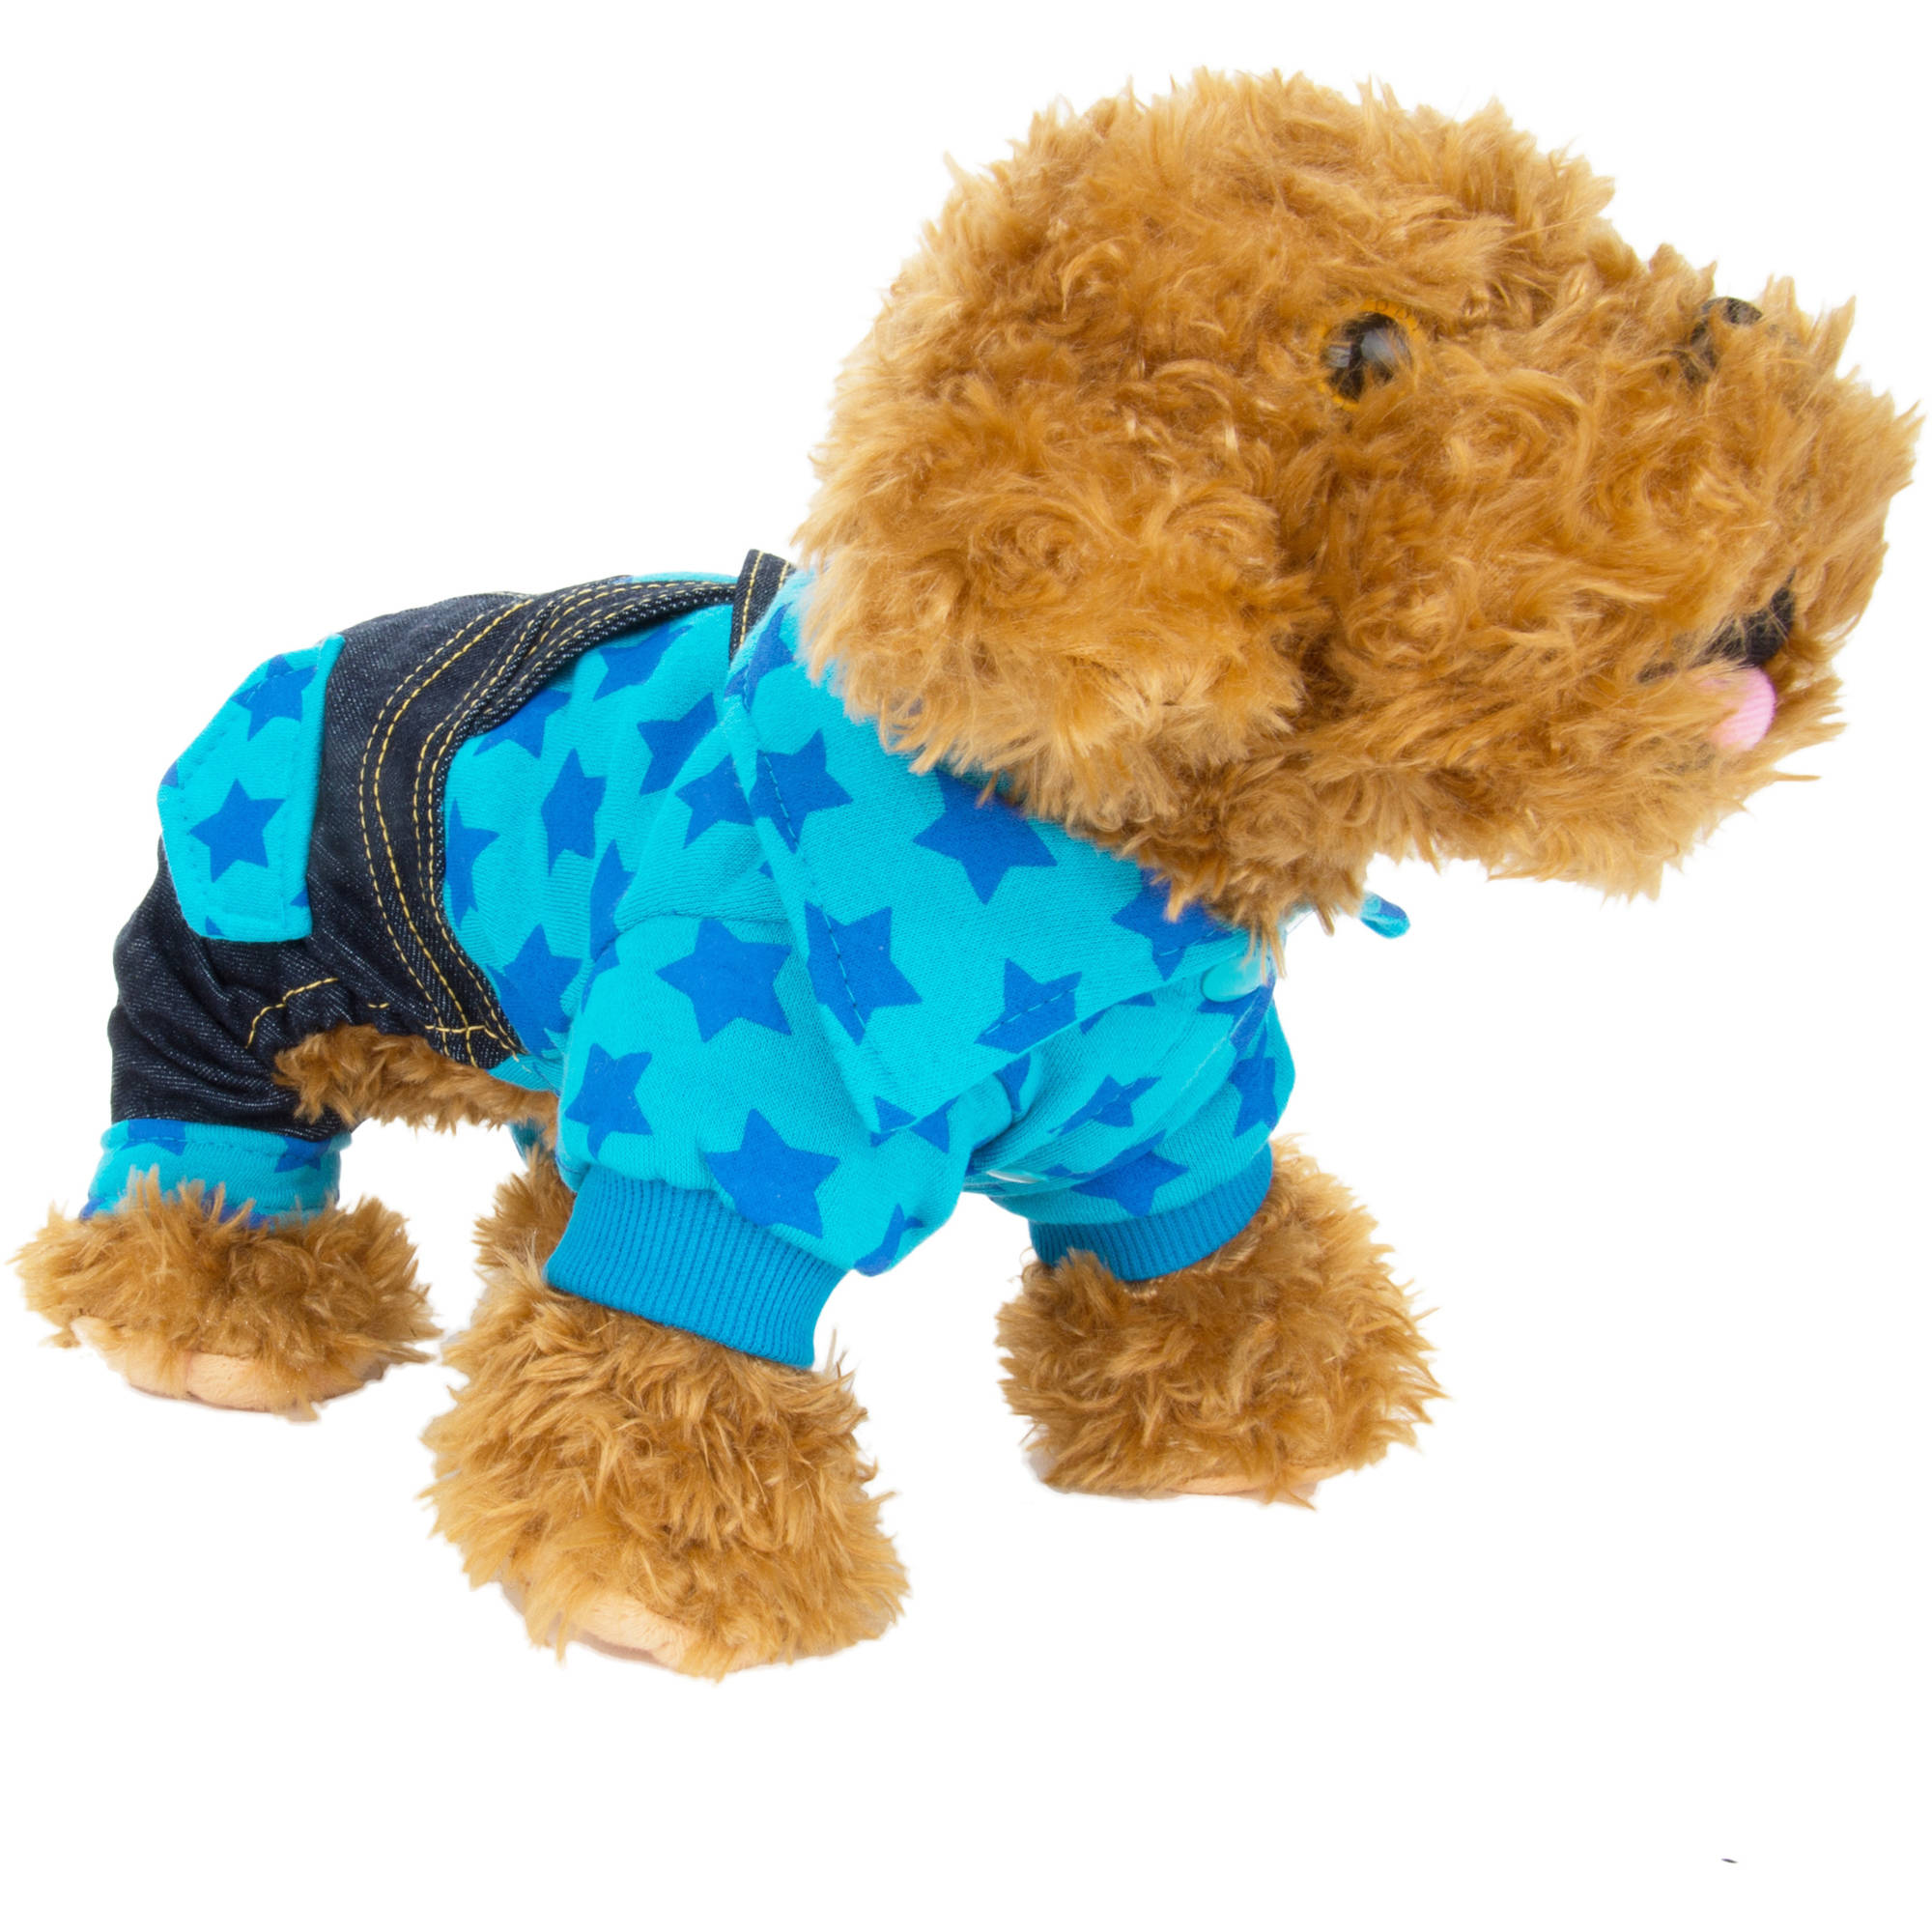 CUECUEPET Cotton Denim Overall Suspenders Suit Single Piece for Dogs or Puppies